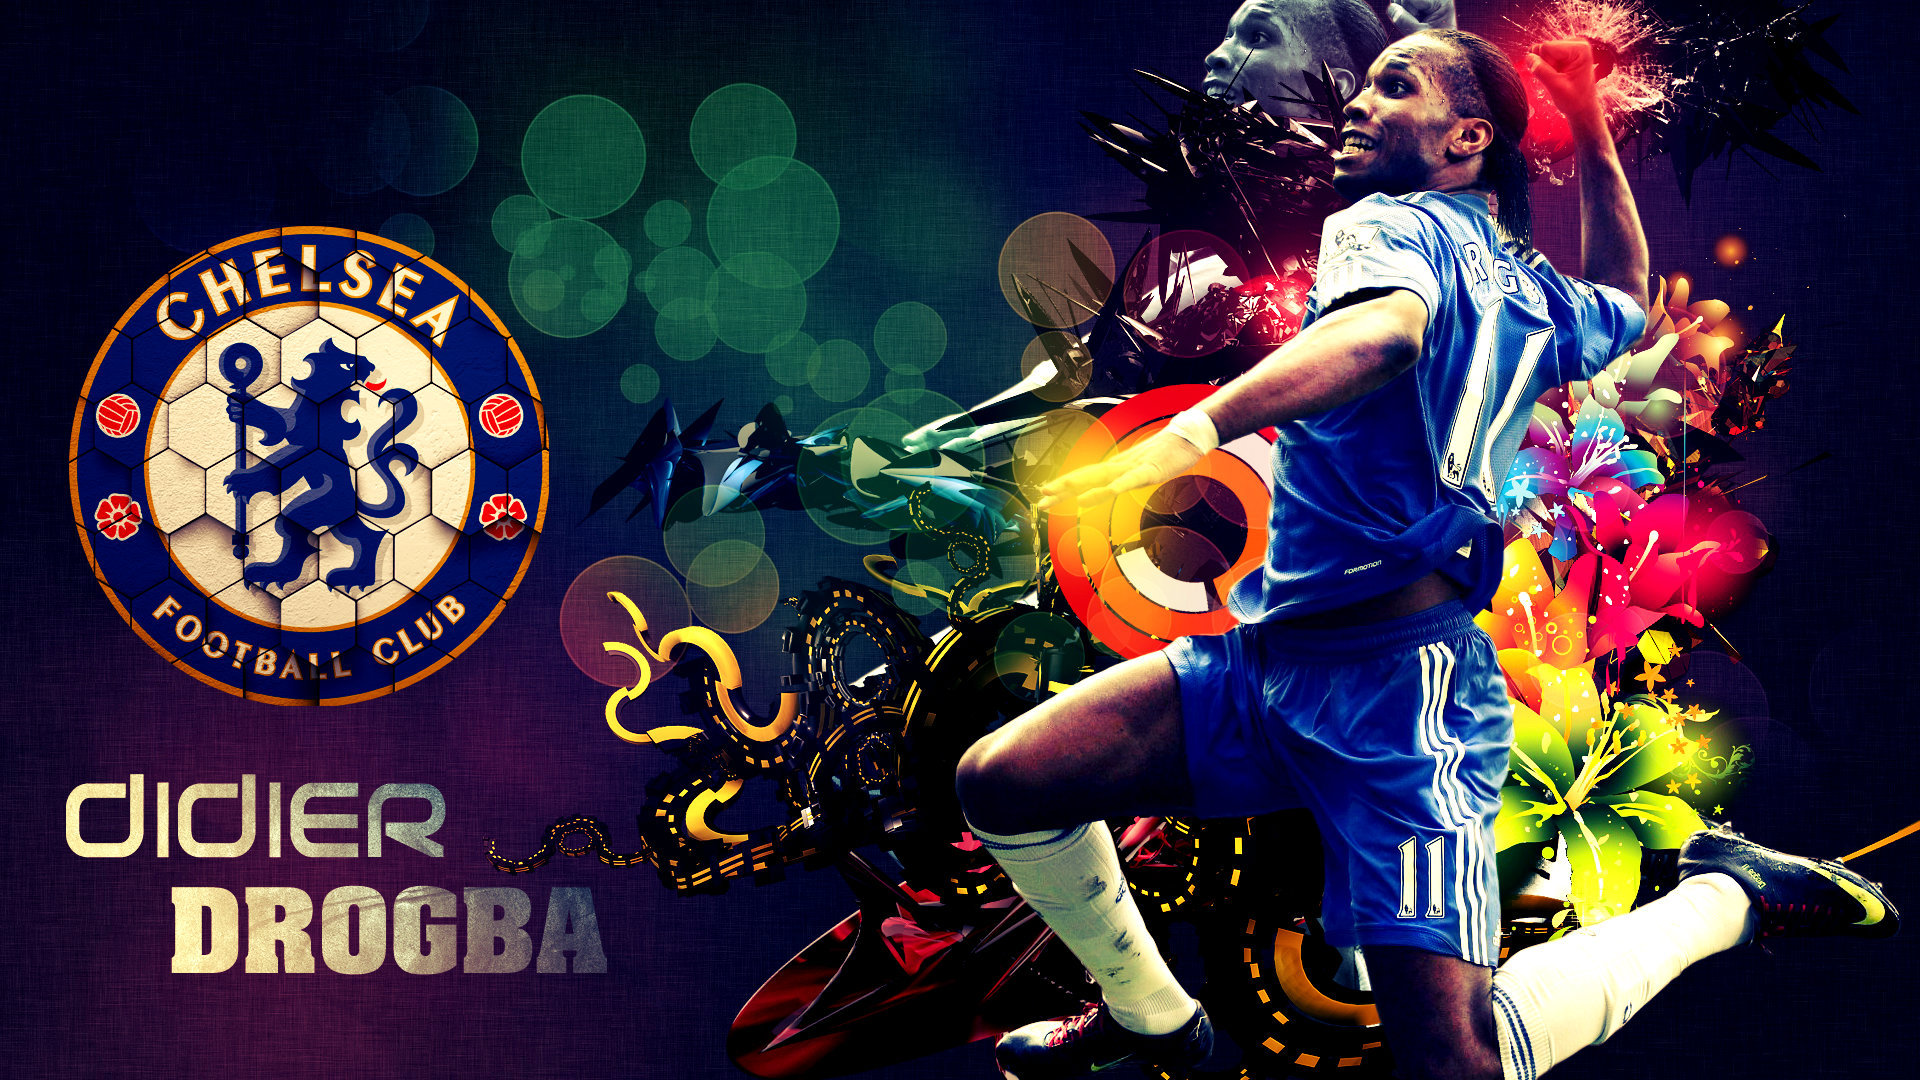 1920x1080 - Didier Drogba Wallpapers 9